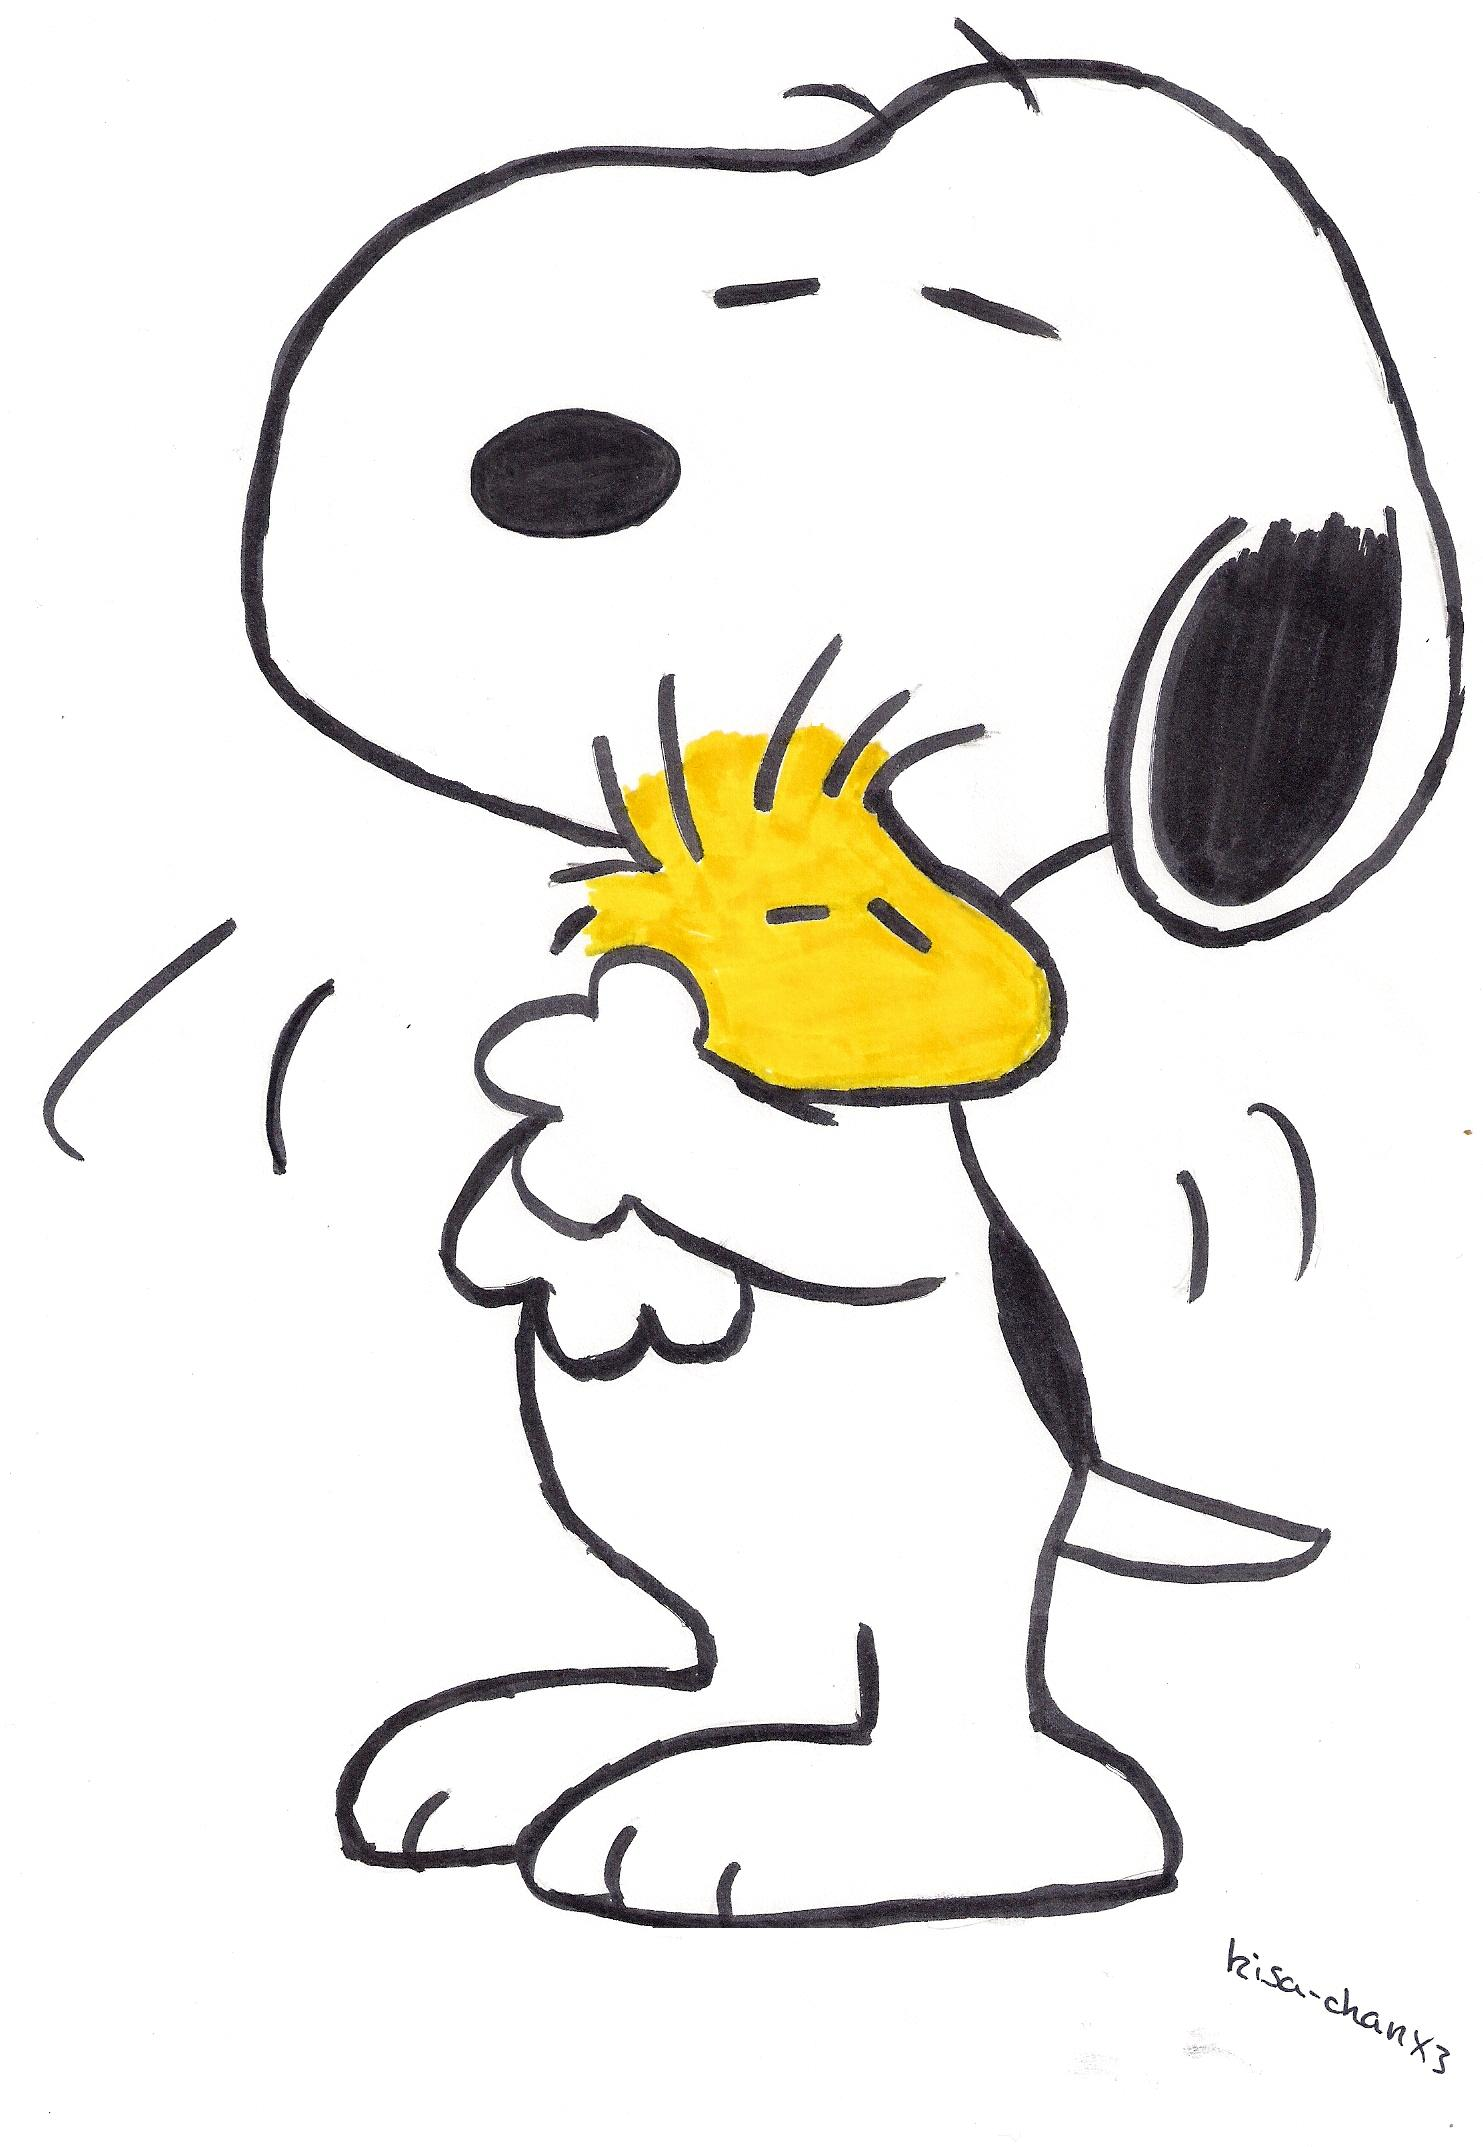 Free Charlie Brown Clipart, Download Free Clip Art, Free Clip Art on.